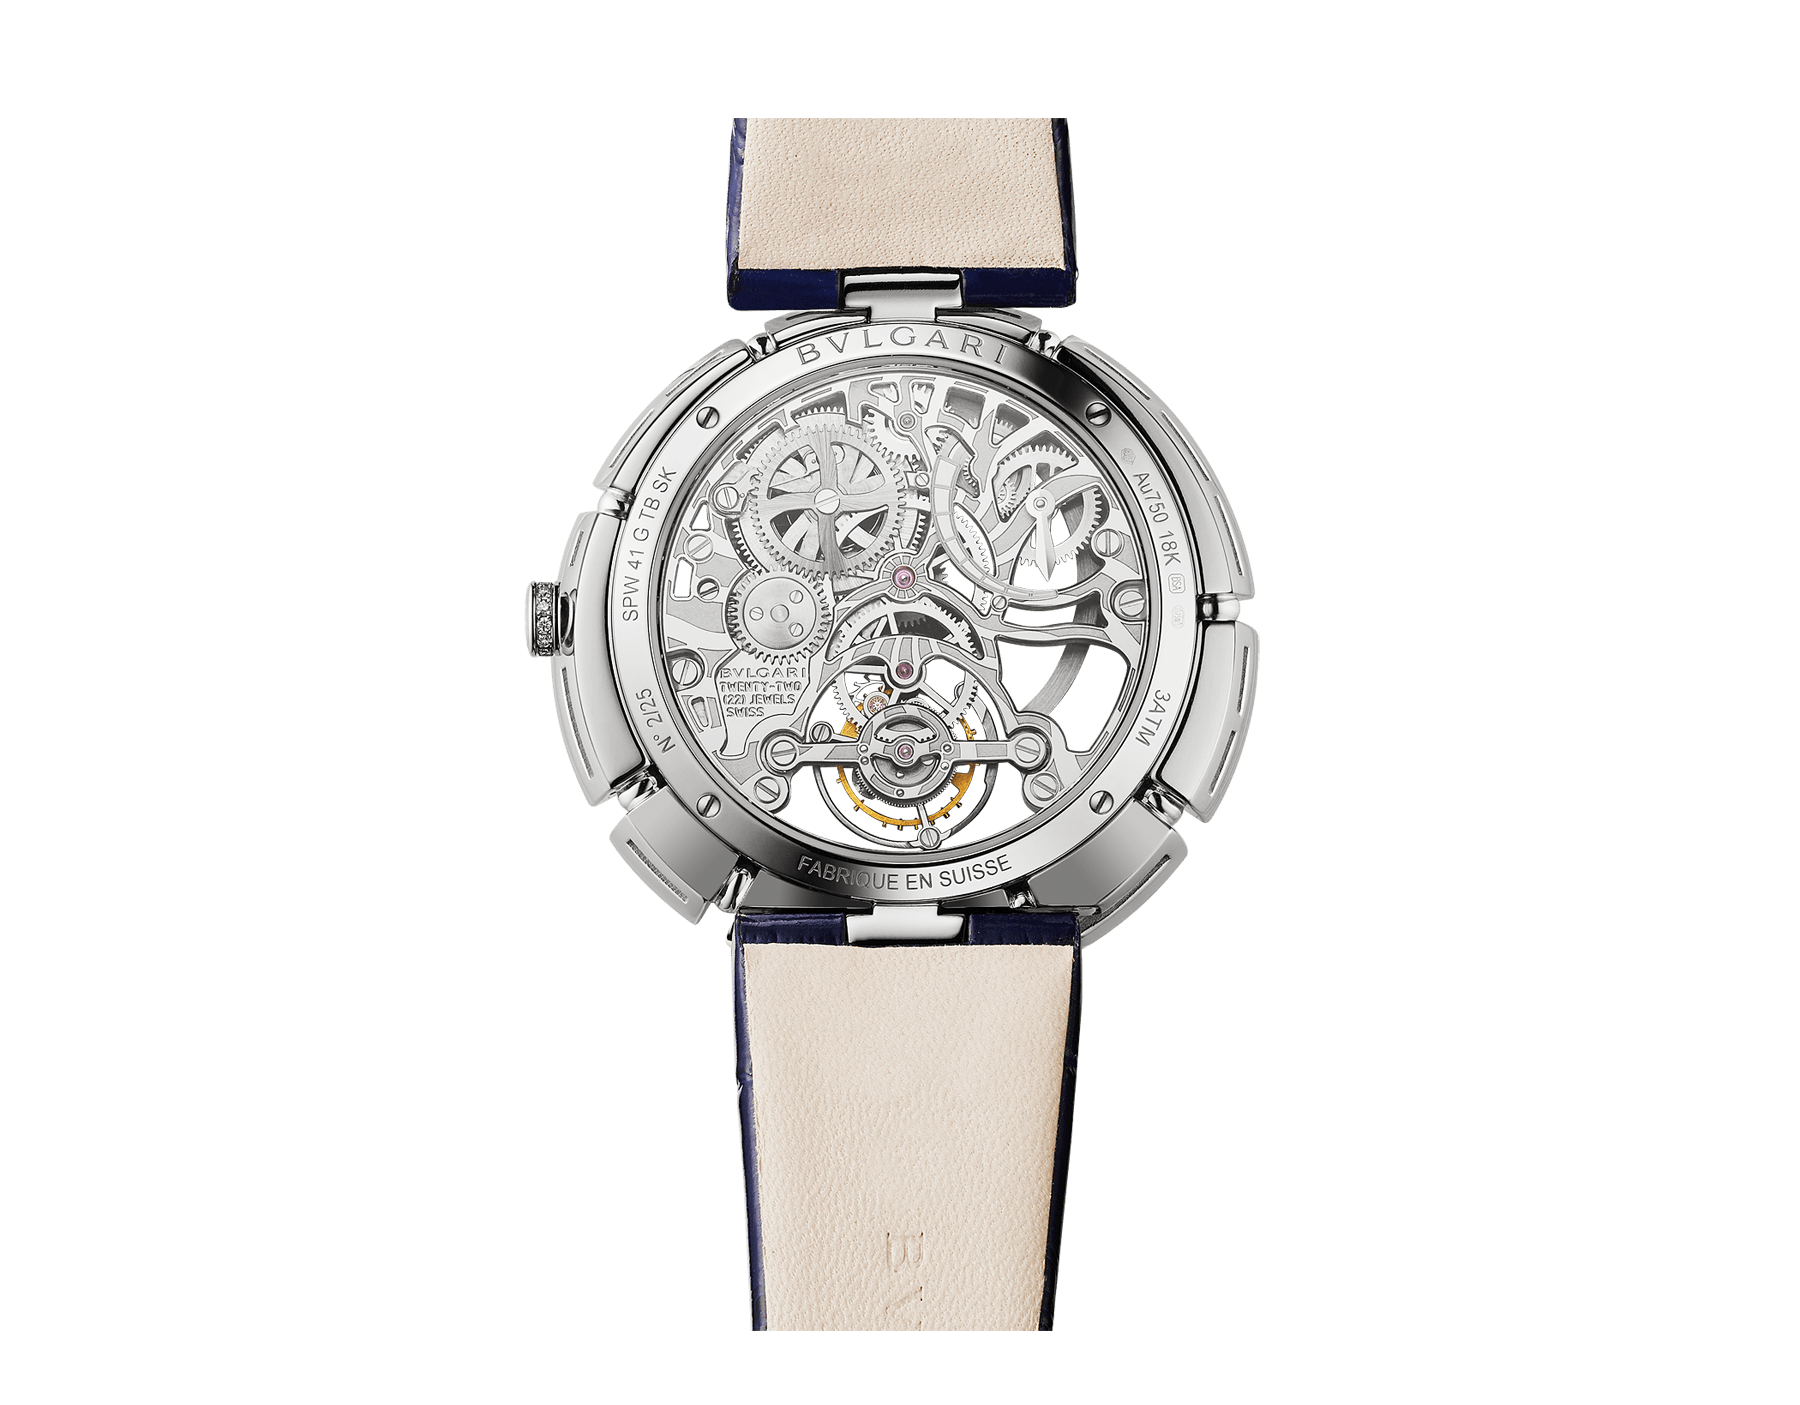 Serpenti Incantati Tourbillon watch with manufacture mechanical skeletonized movement, manual winding, 18 kt white gold case set with brilliant cut diamonds and a tanzanite, transparent dial and blue alligator bracelet. 102723 image 4